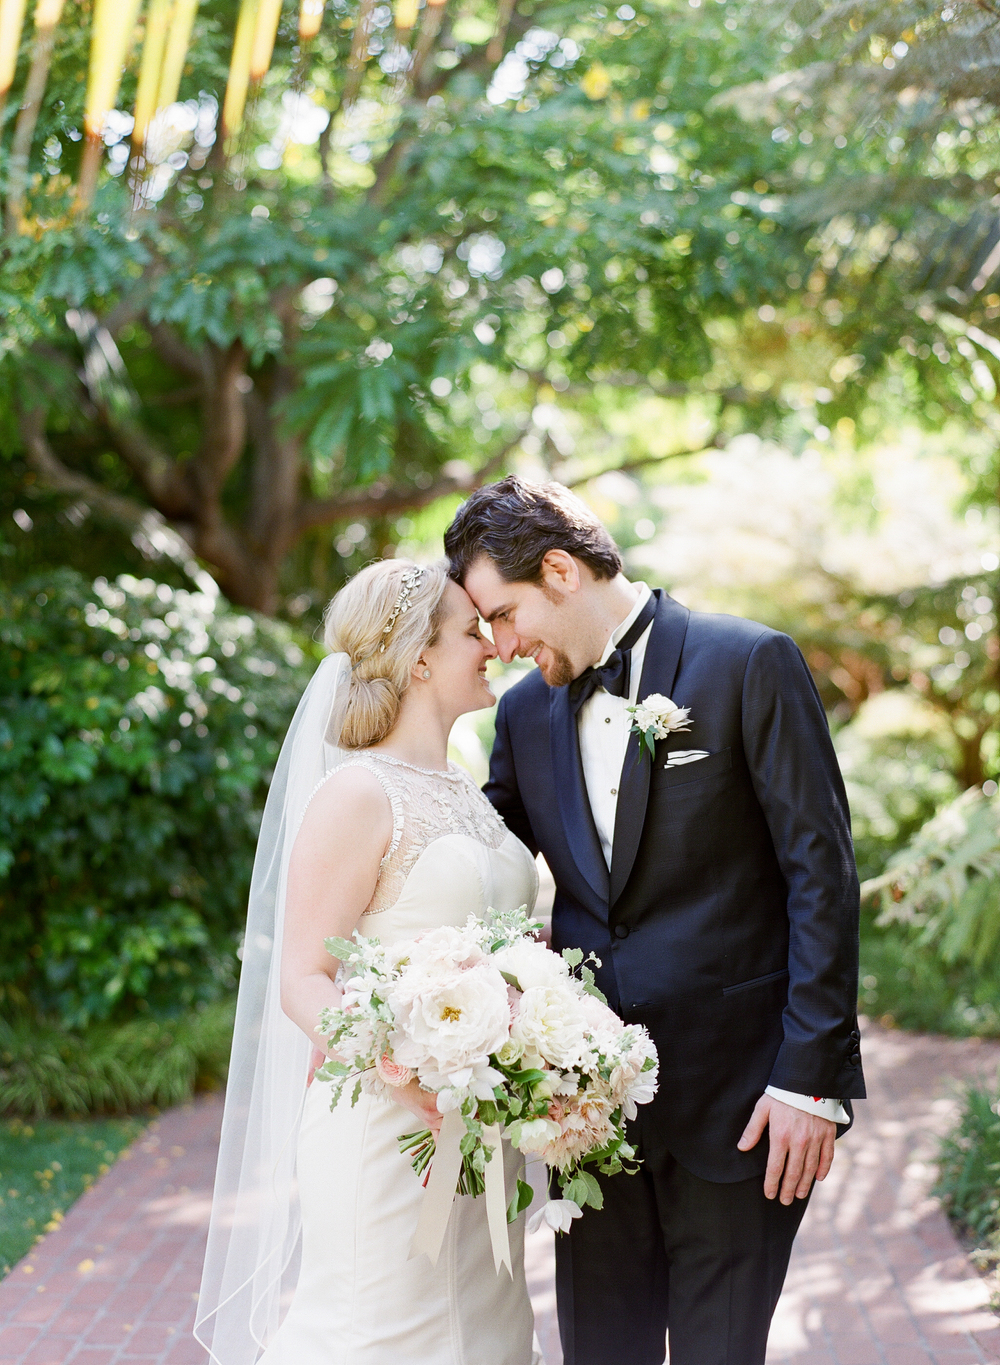 michellebeller.com | Michelle Beller Photography | Wedding at the Four Seasons Biltmore in Santa Barbara | Southern California Wedding Photographer